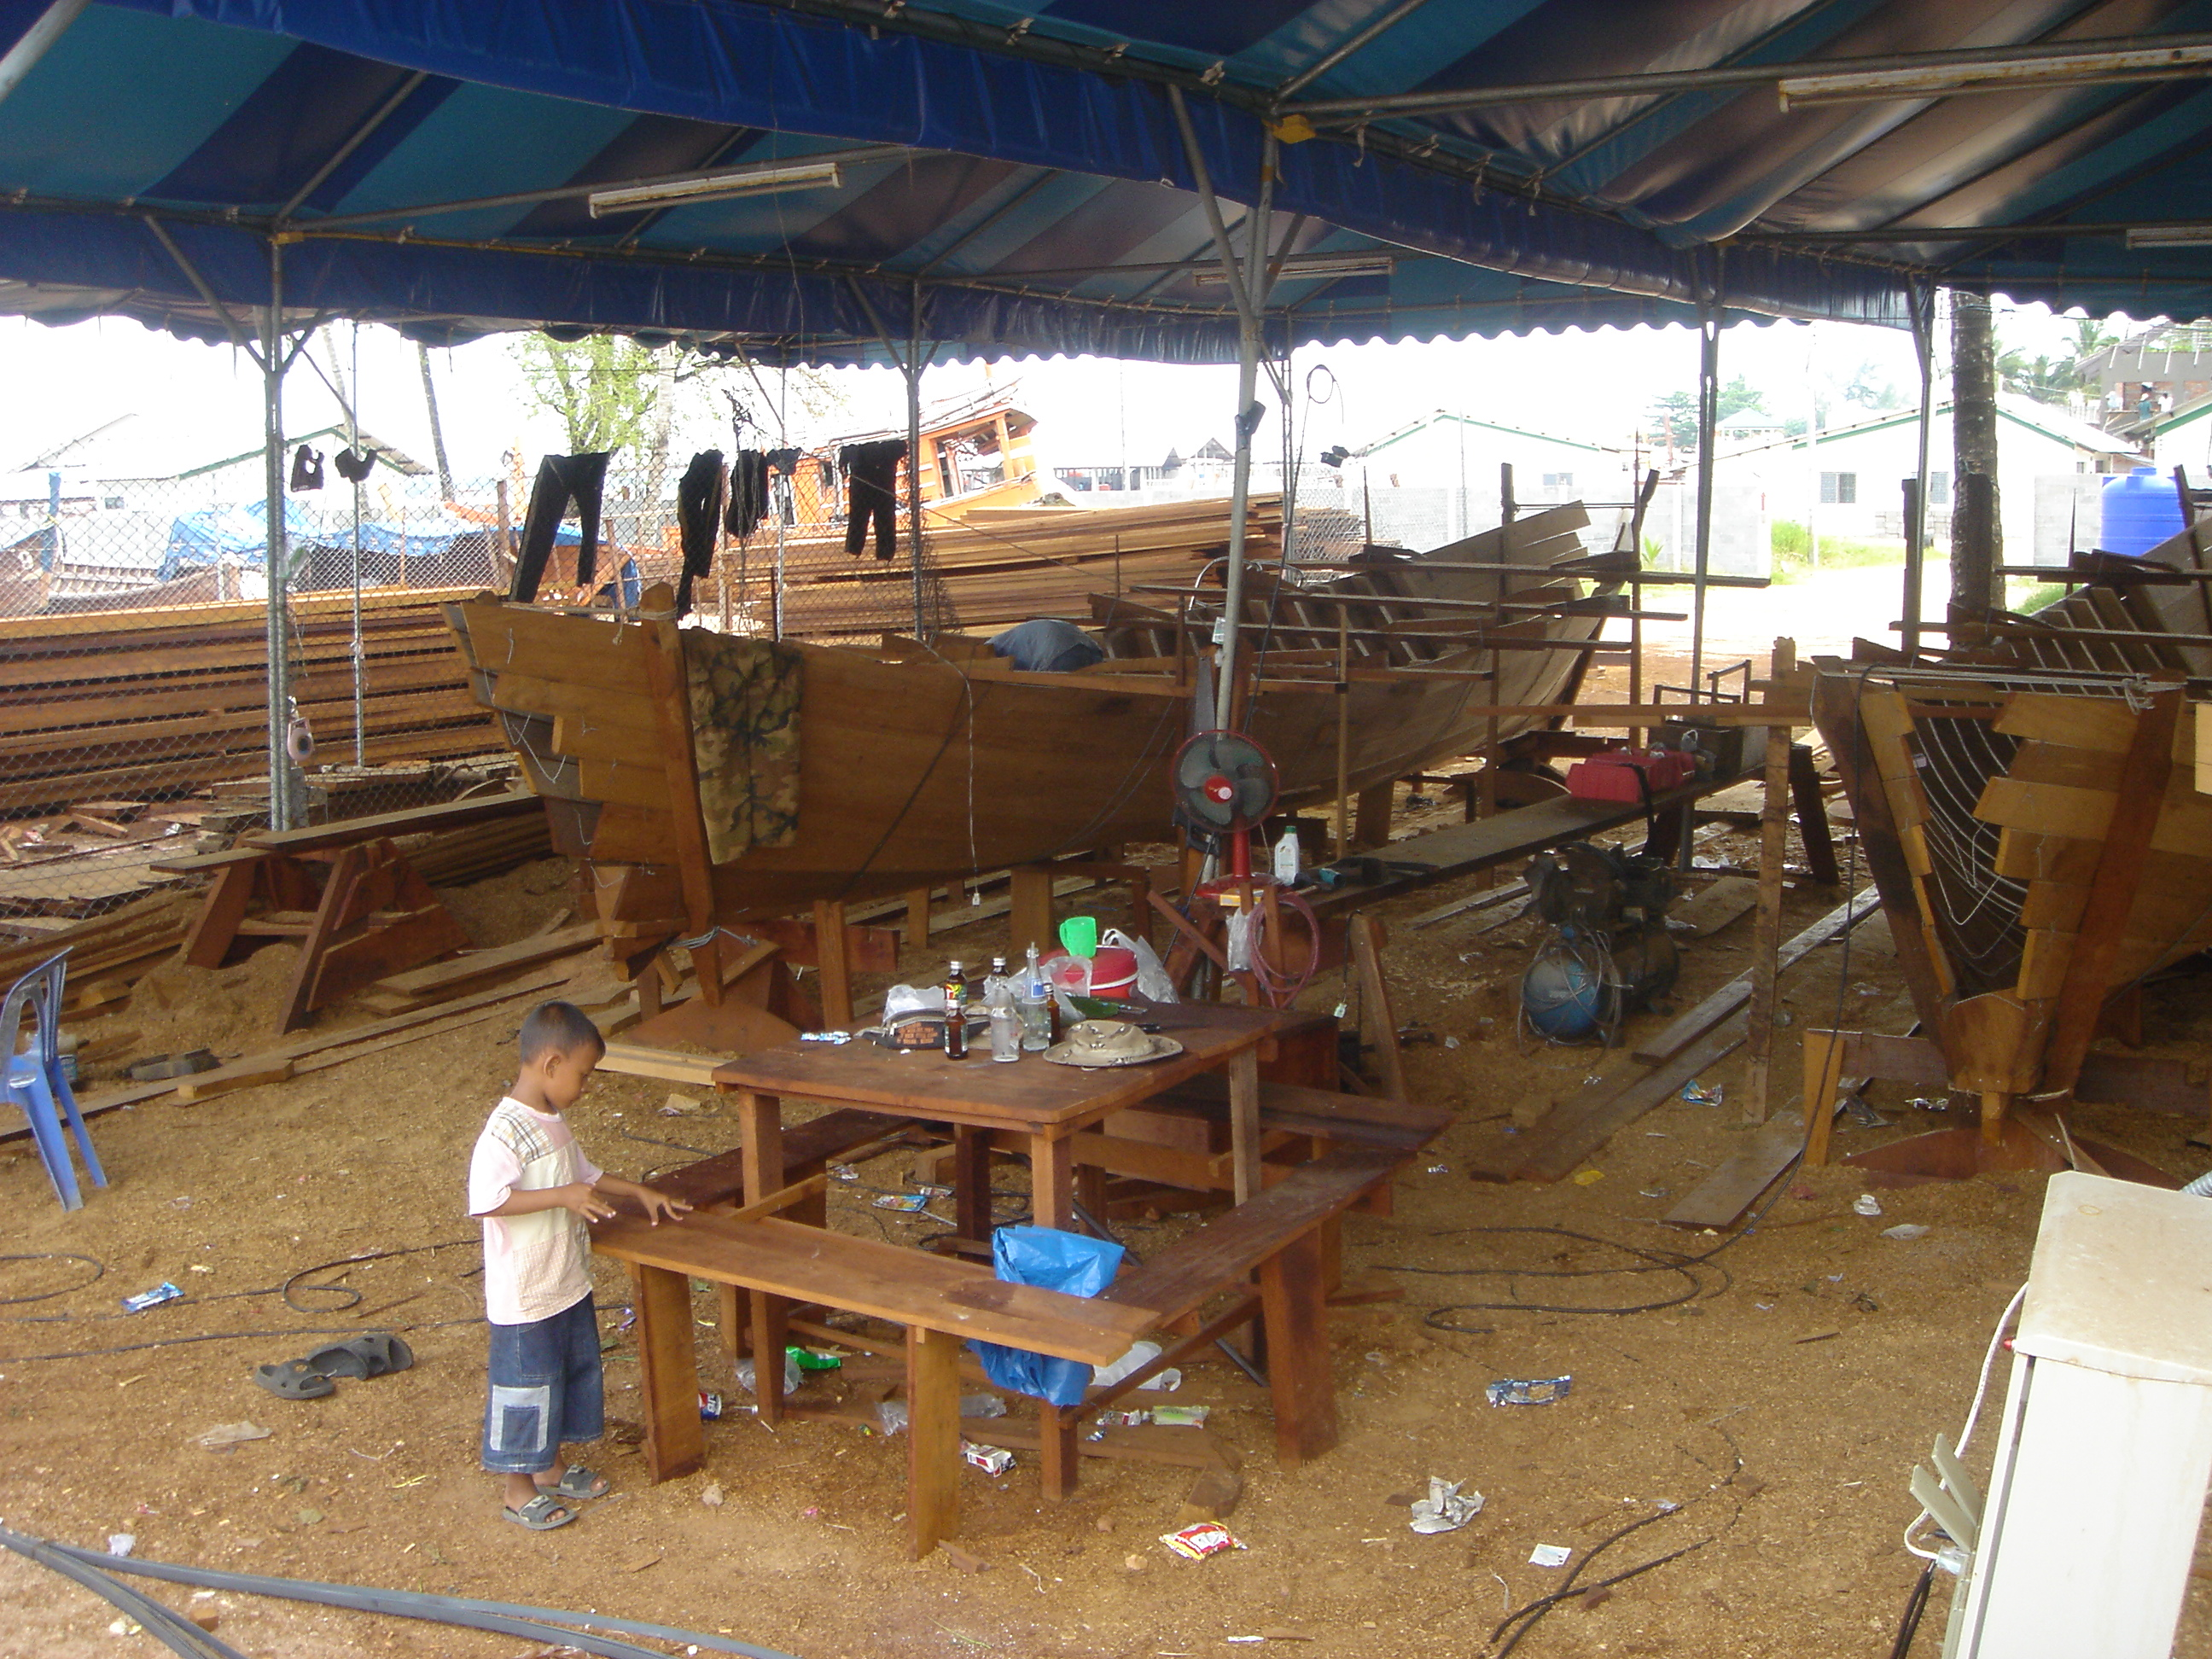 2005oct15_fishingvillage_022.jpg